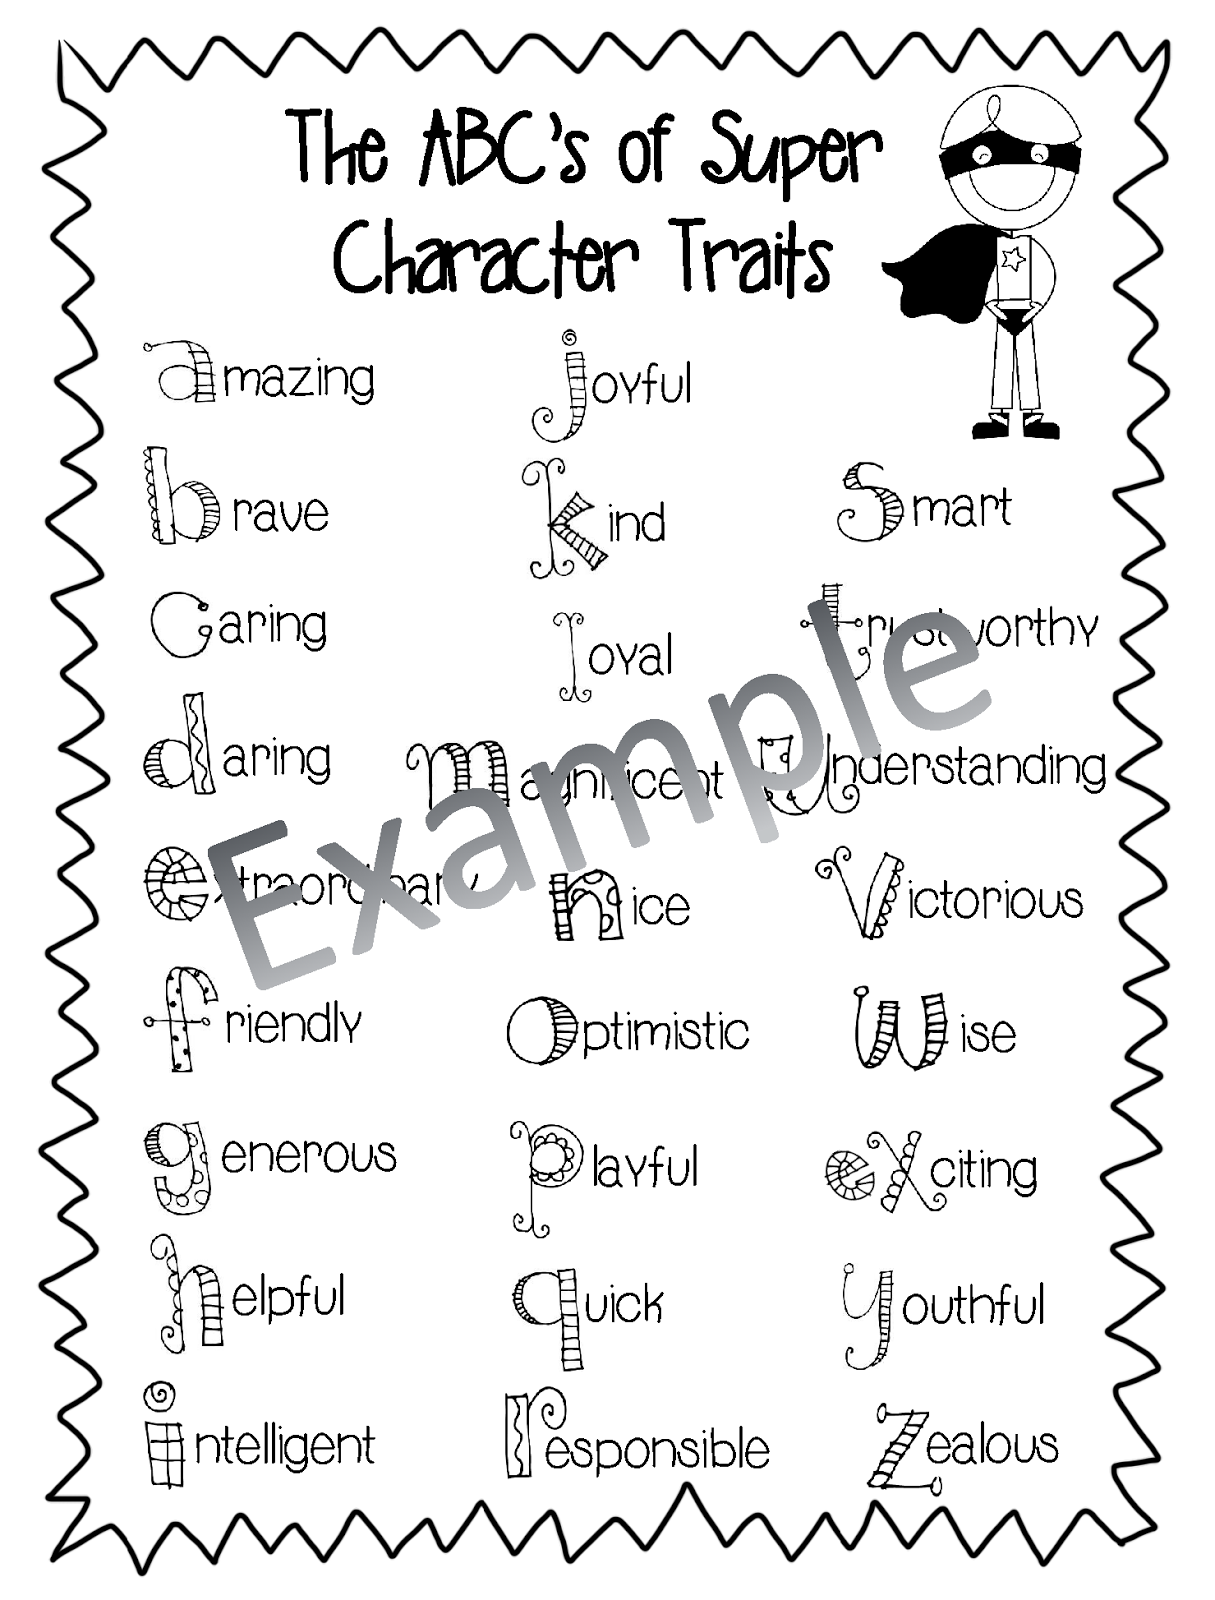 totally terrific in texas characters are super we talked about positive character traits and then completed the super character page there is also a blank abc page so you could come up your own